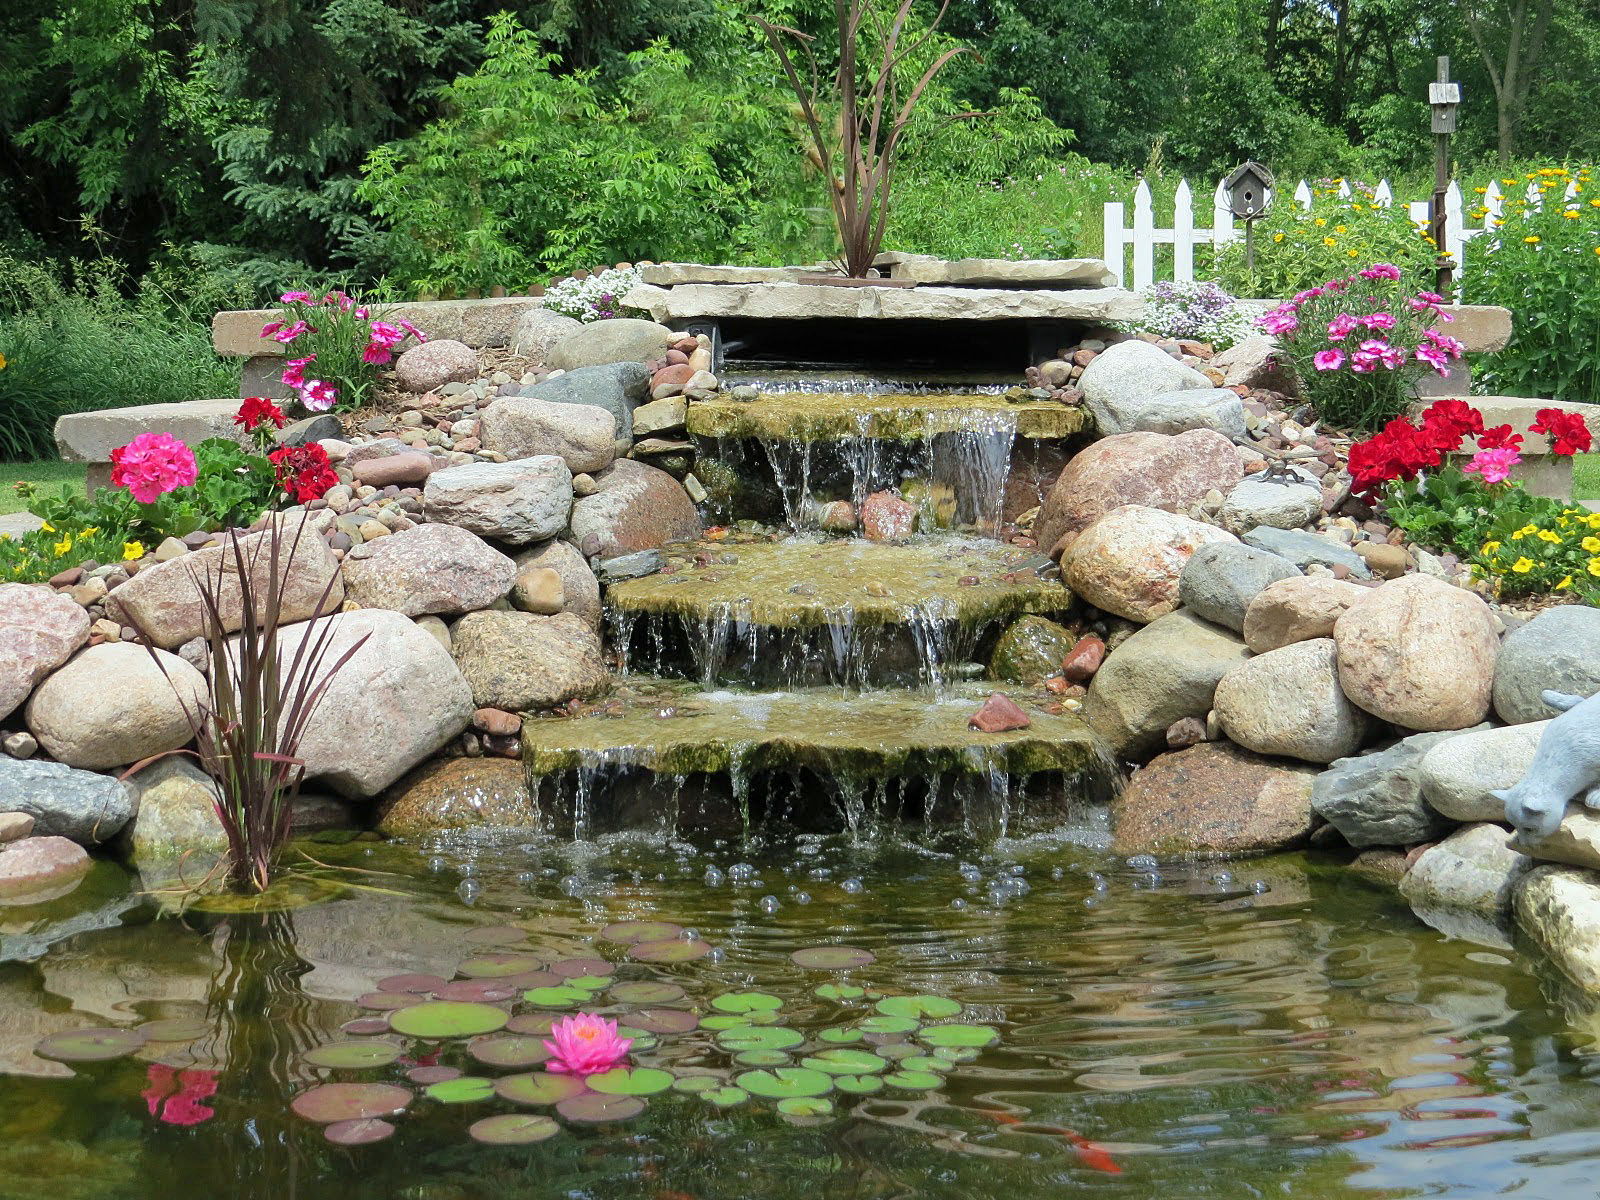 Garden Tour - July 15th 9am to 3pm July 16th Noon to 3pm